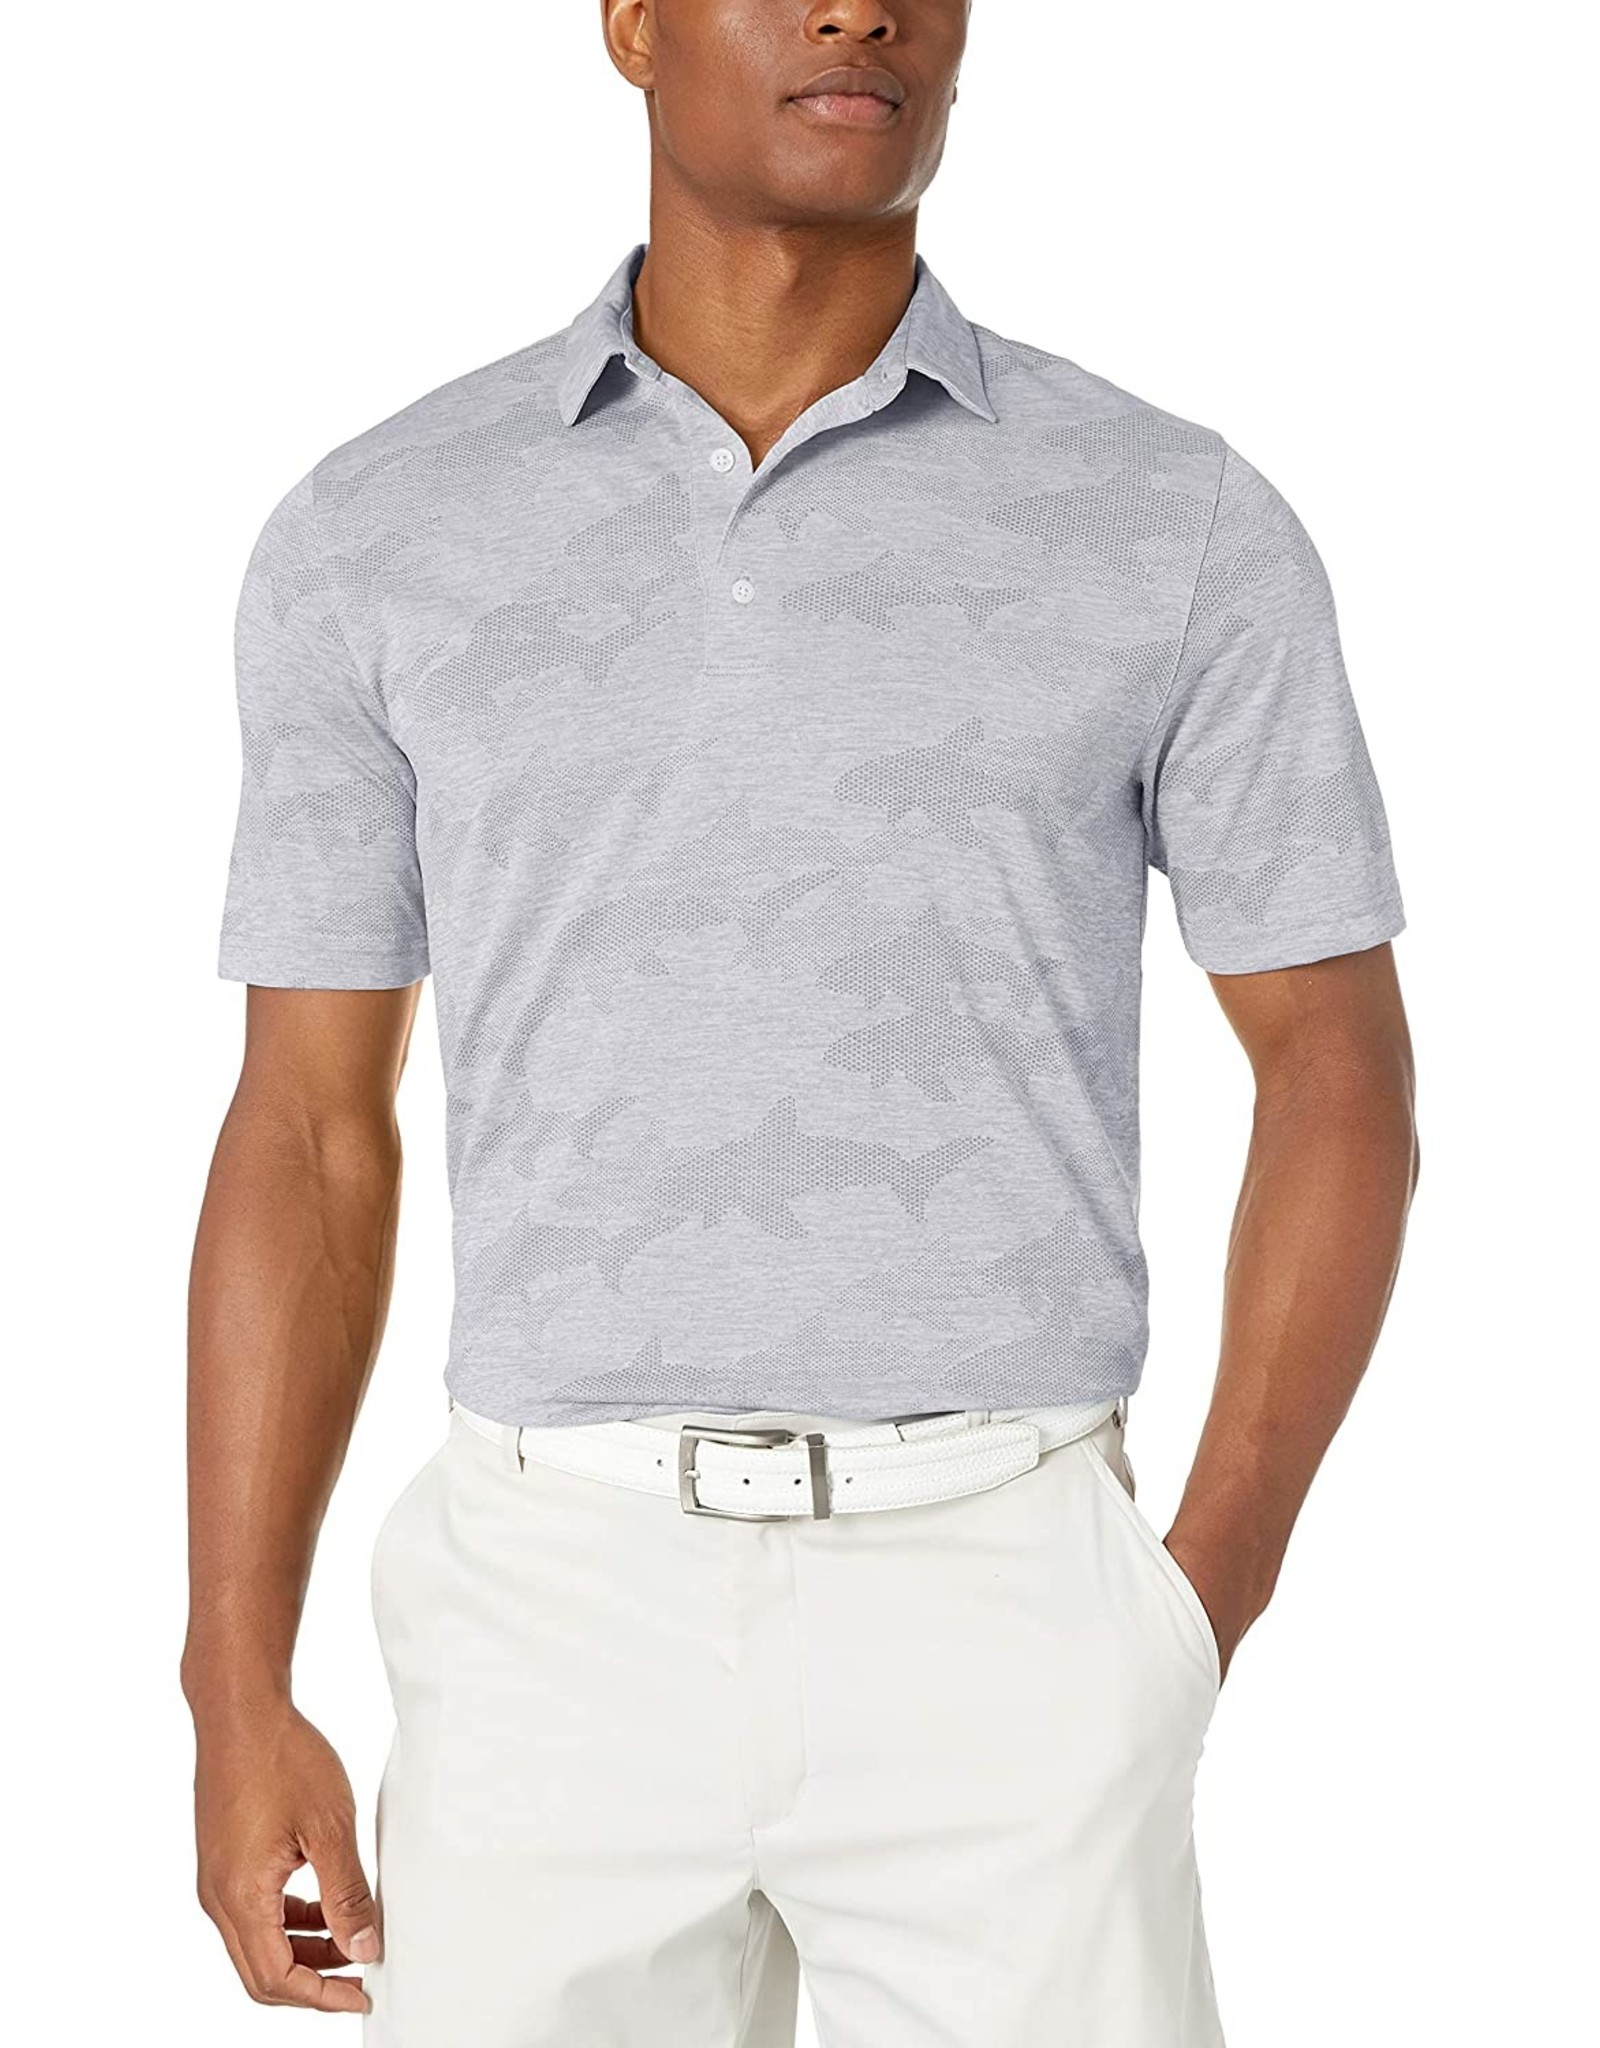 Greg Norman Apparel GN Shark jacquard